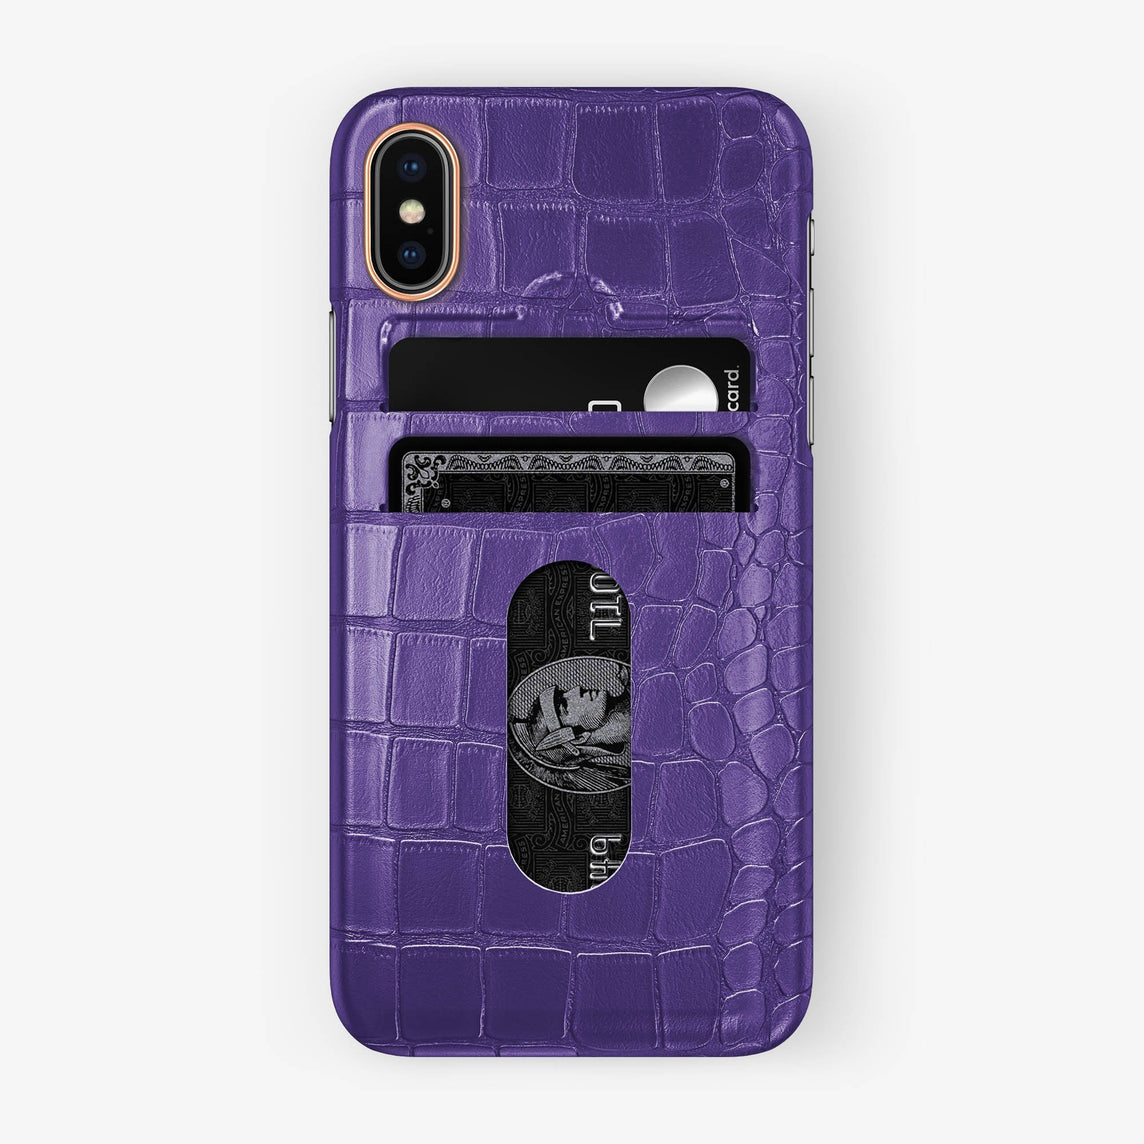 Alligator Card Holder Case iPhone X/Xs | Purple - Rose Gold - Hadoro